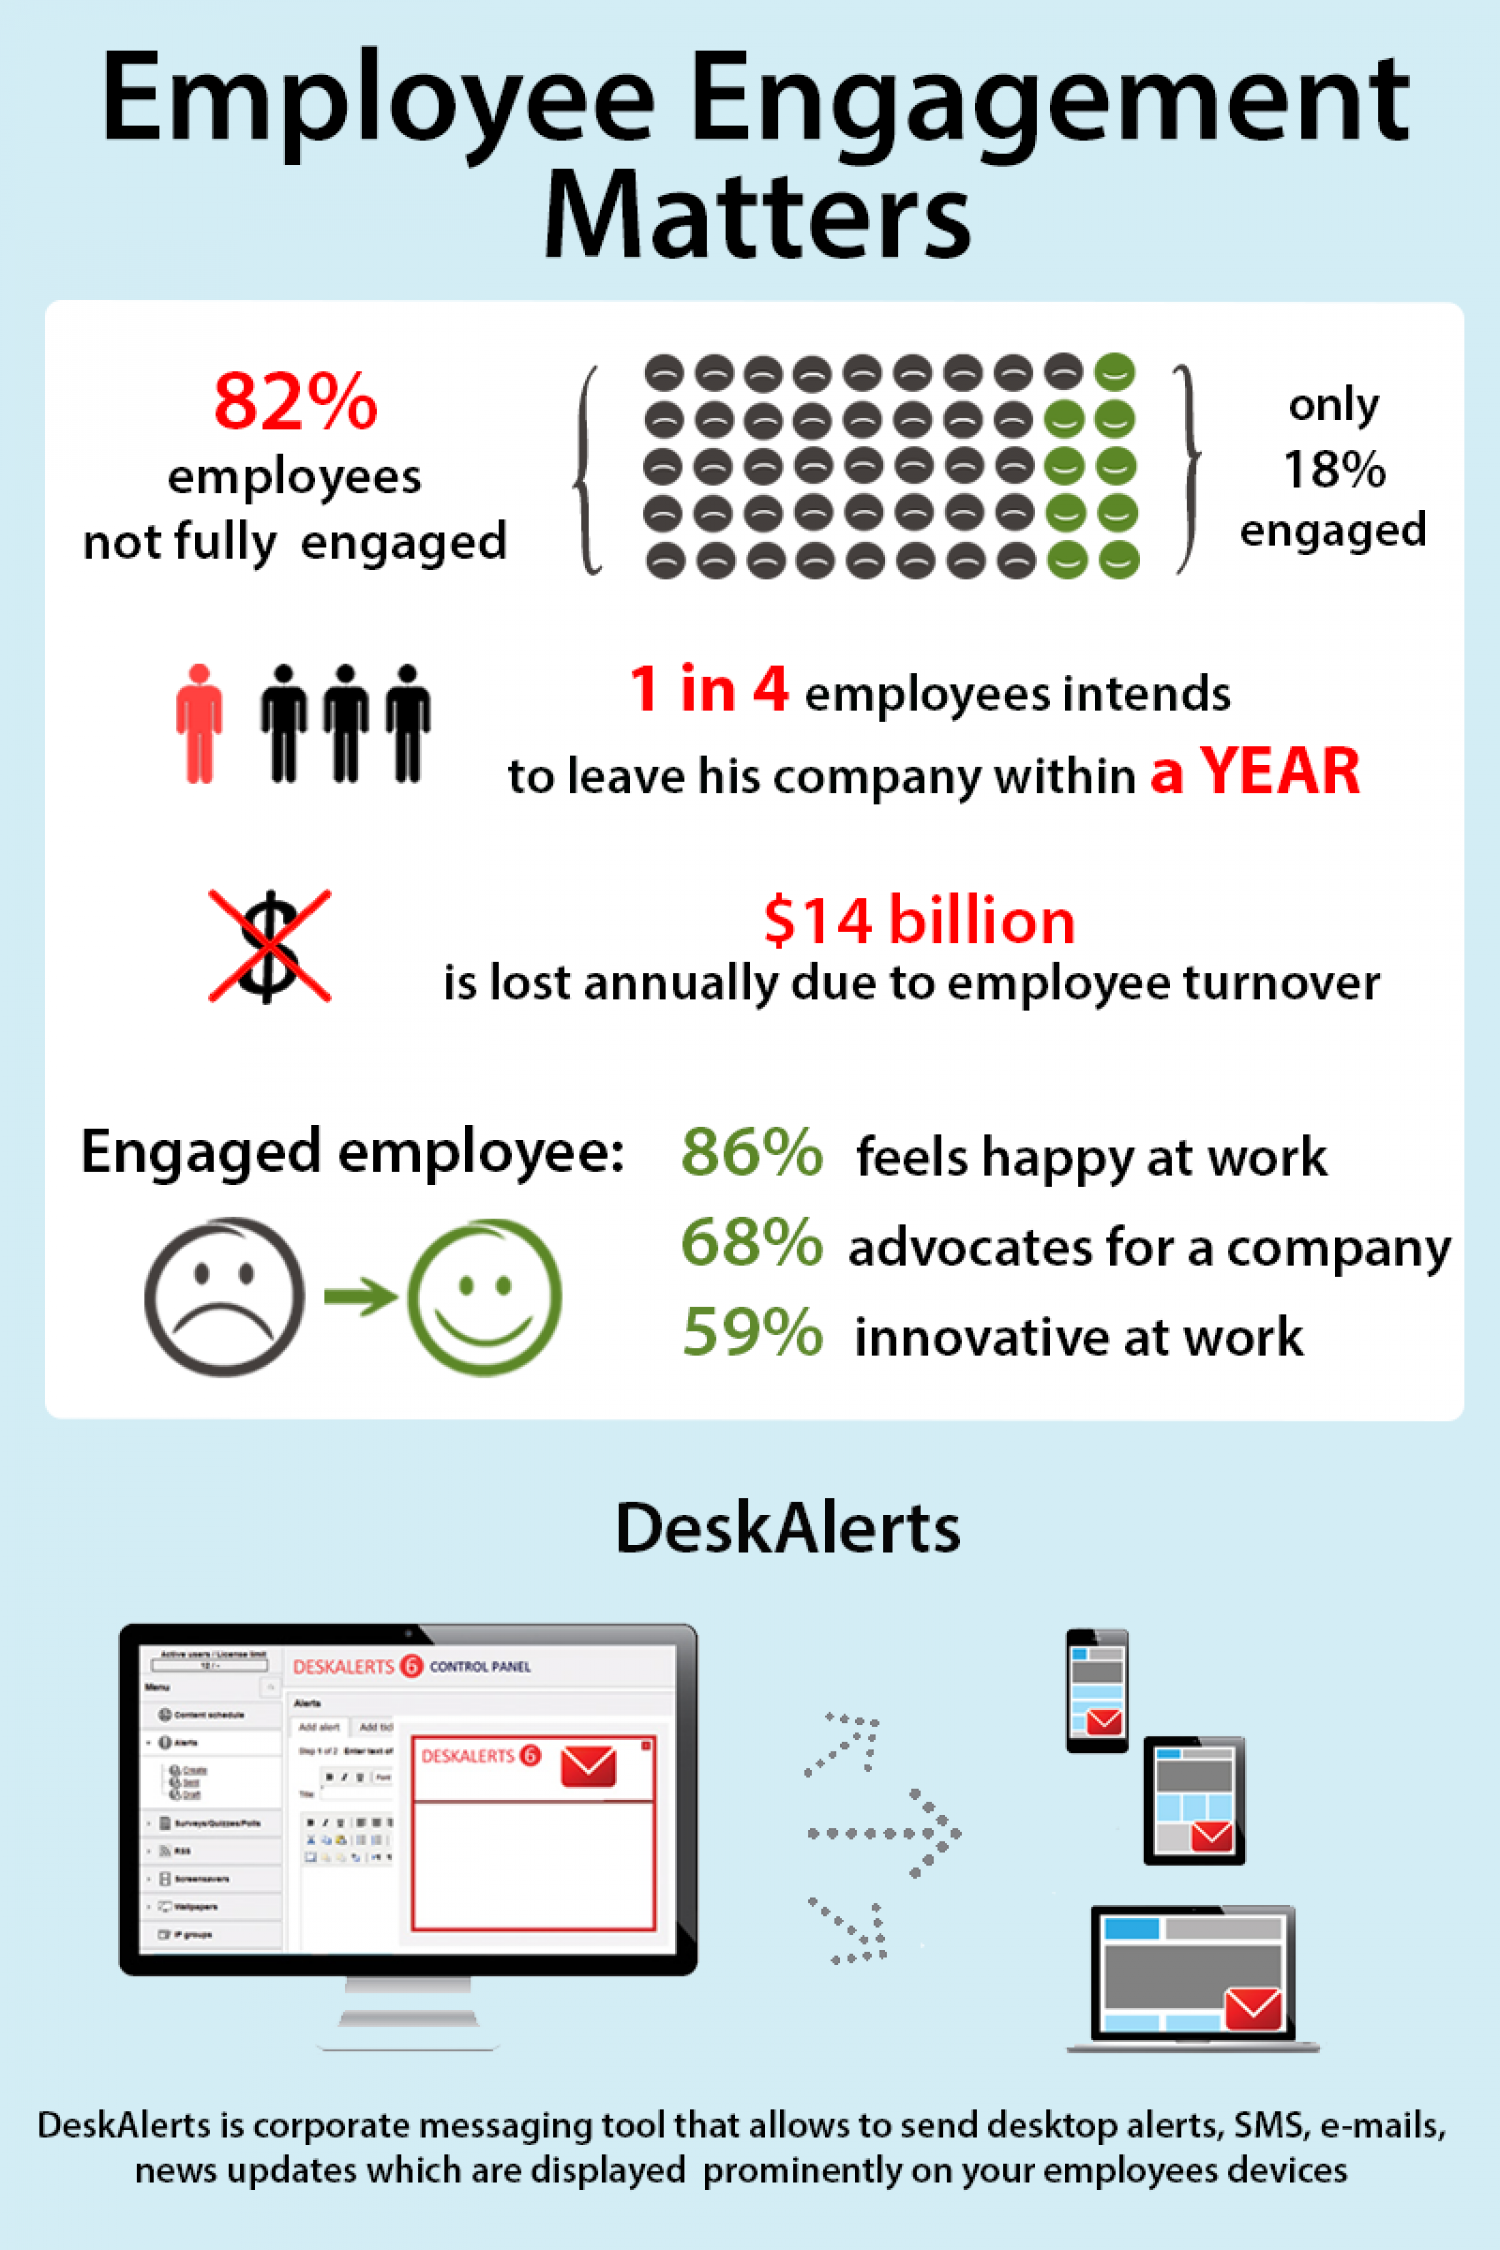 Employee Engagement Matters Infographic